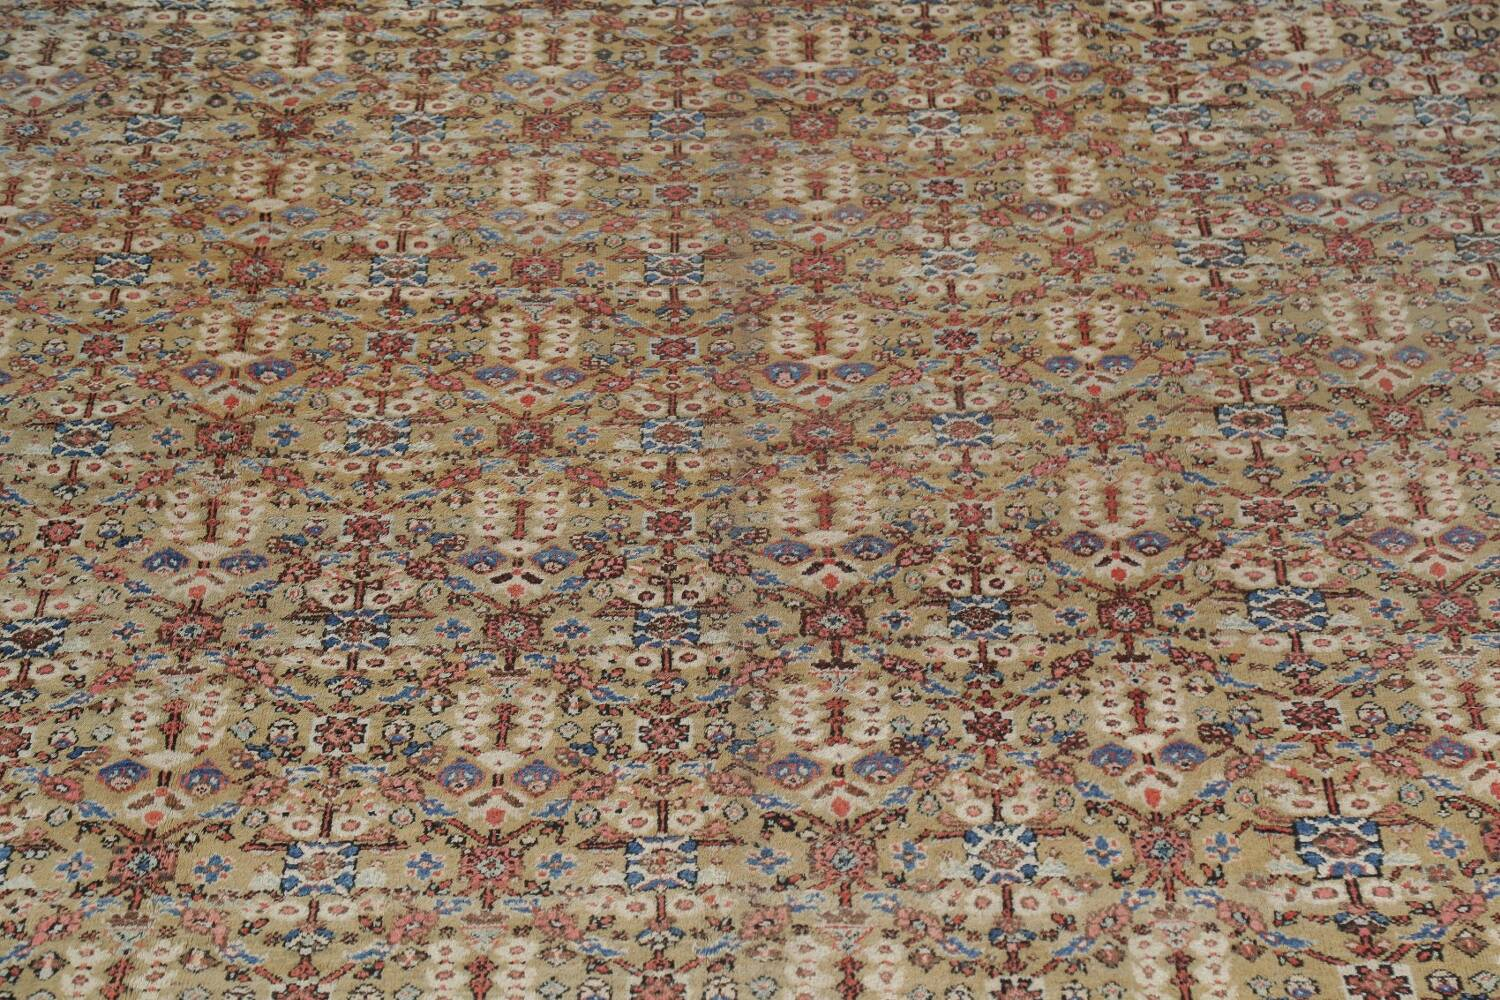 Antique Pre-1900 Sultanabad Persian Rug 13x22 Large image 4